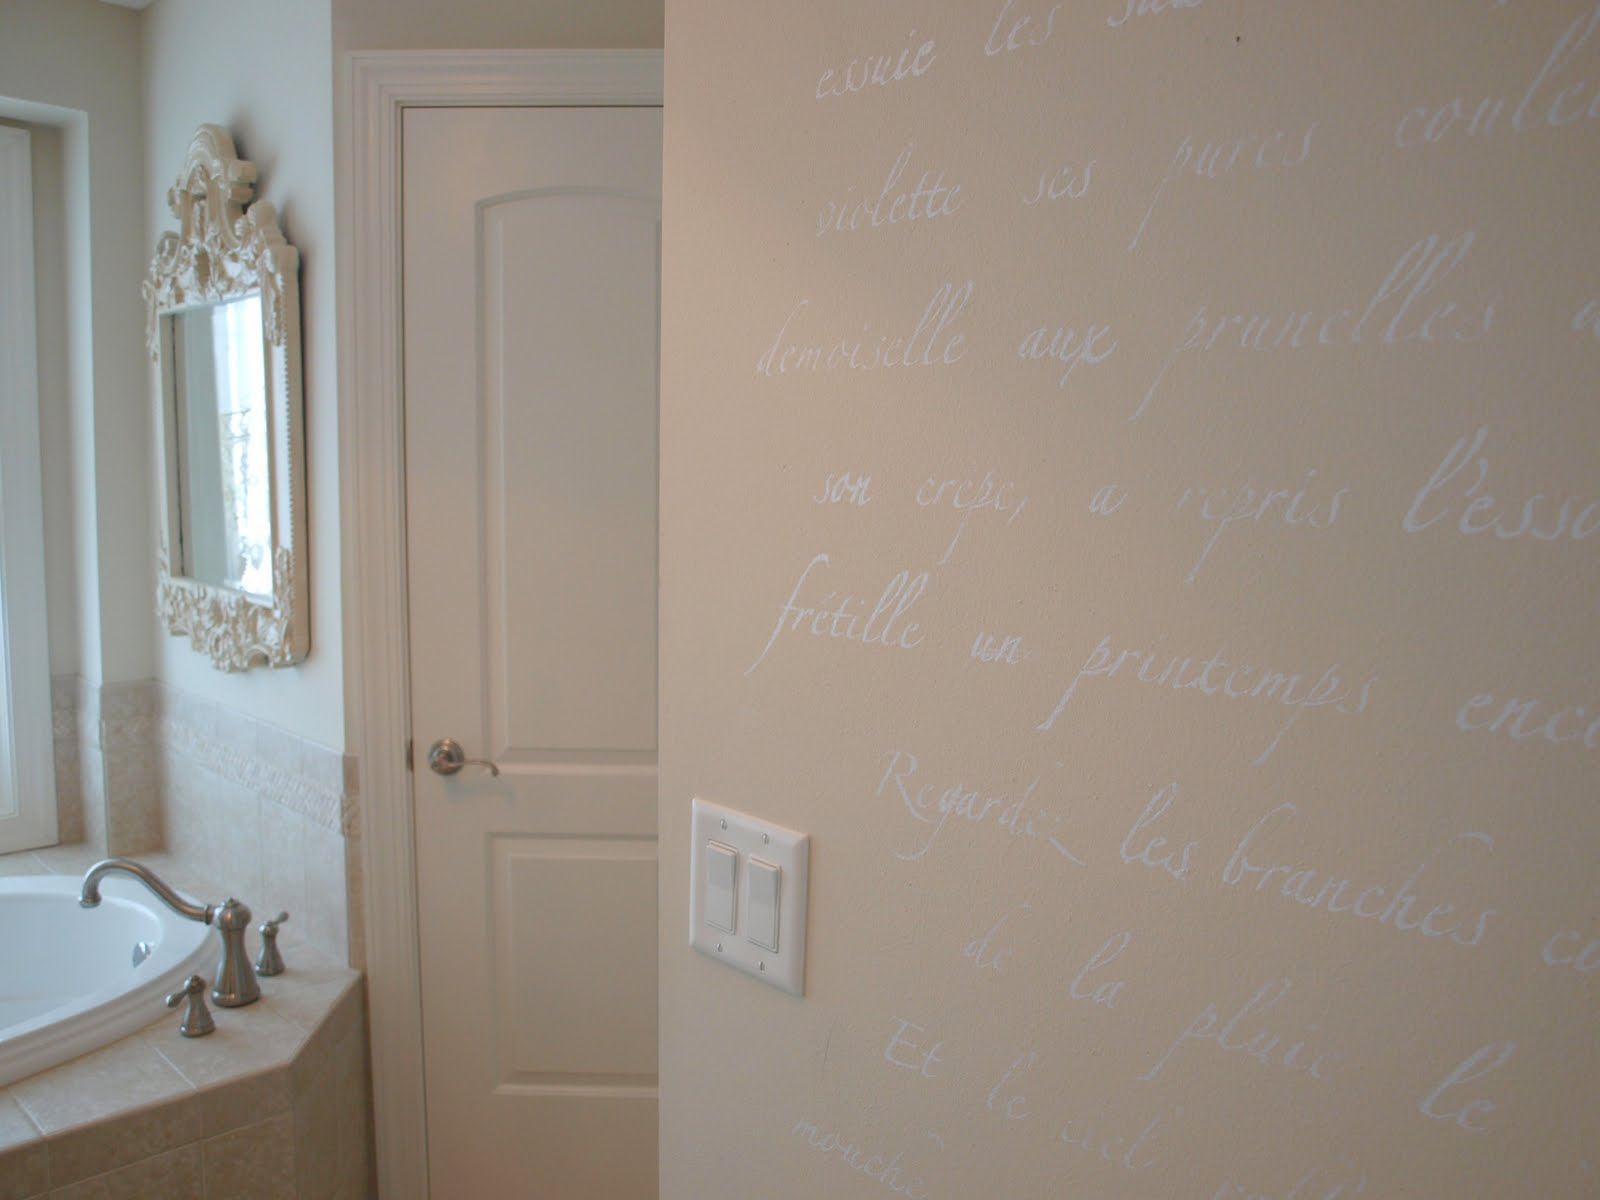 Springtime in Paris script stencil by Royal Design Studio was used on wall of bathroom by Hello Lovely Studio.